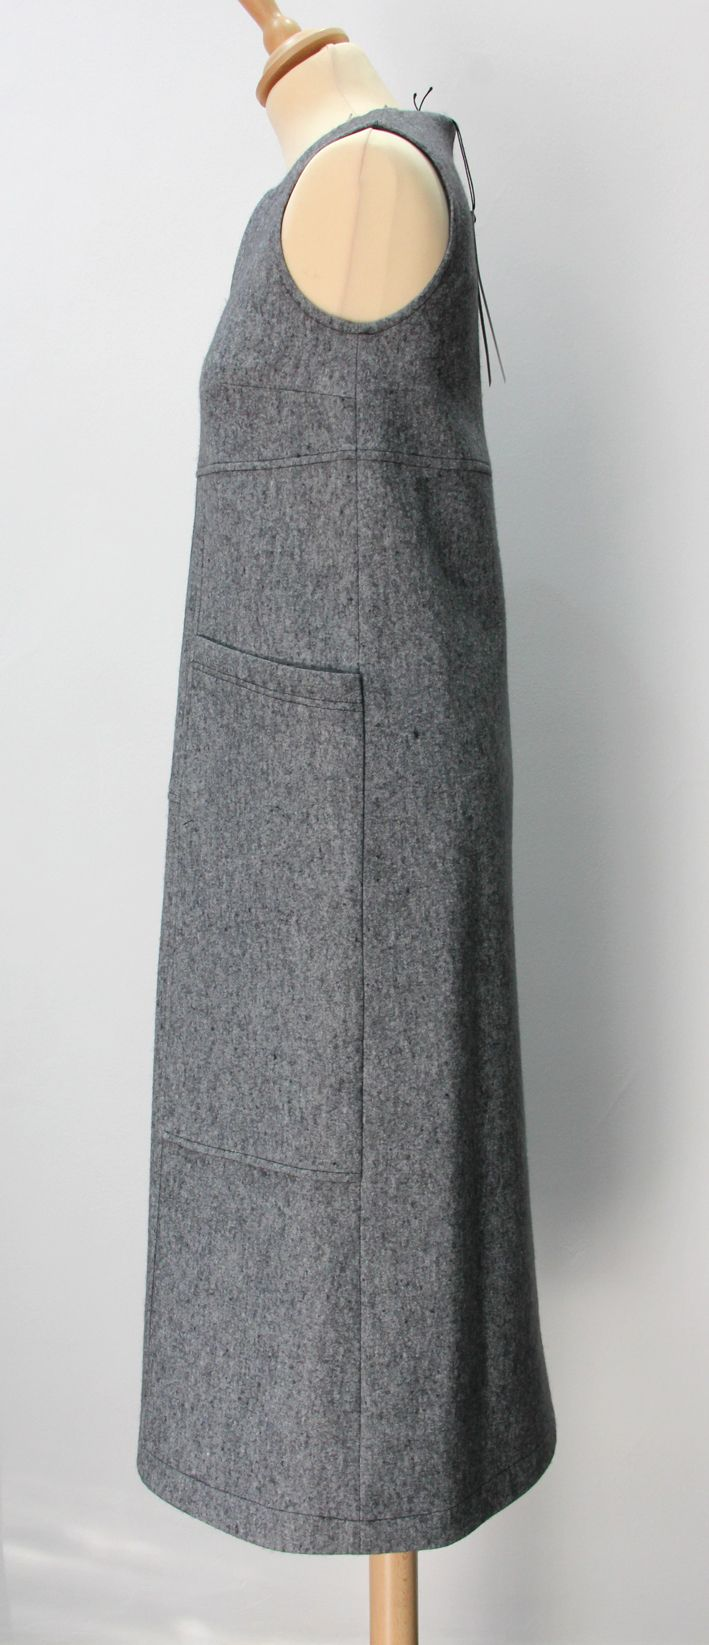 grey sarafan dress. Wool and cotton, warm and trendy!